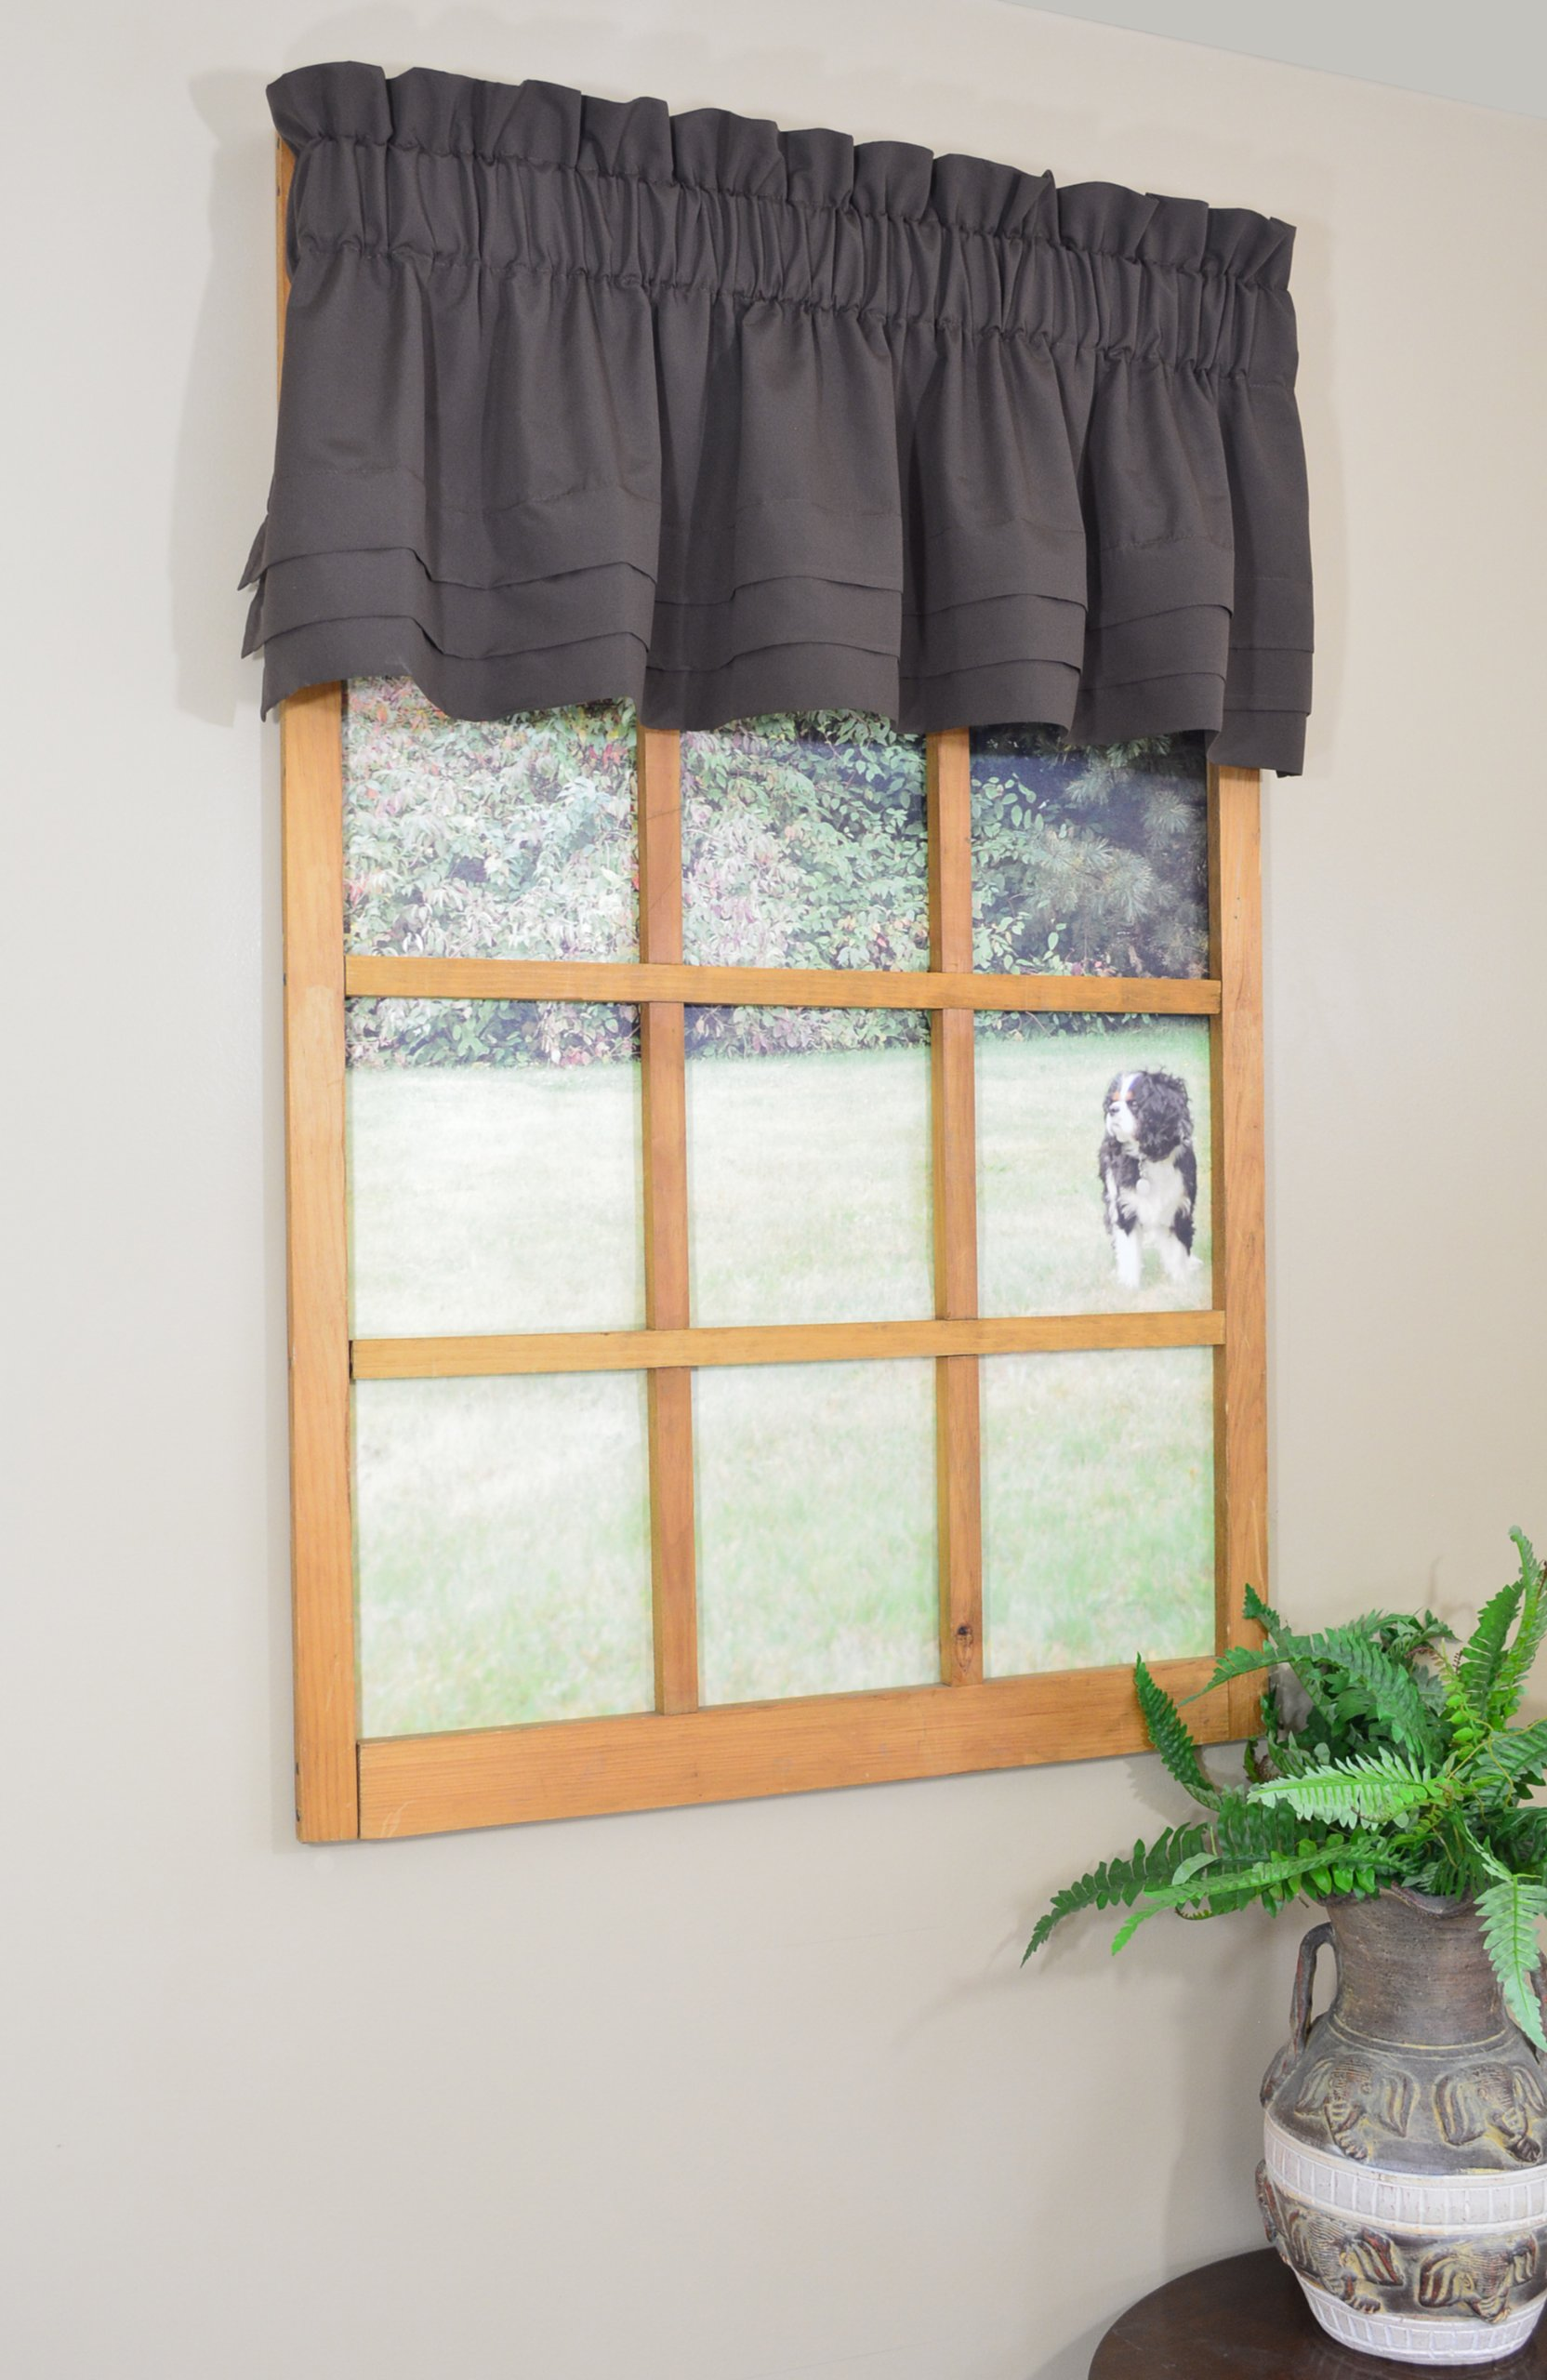 Curtain Chic Supple Microfiber Cumberbund Valance, Dark Chocolate - Tailored valance with horizontal pleats Supple hand for superior drape Softly brushed microfiber compliments most types of decor - living-room-soft-furnishings, living-room, draperies-curtains-shades - 81nKRXEsZ4L -